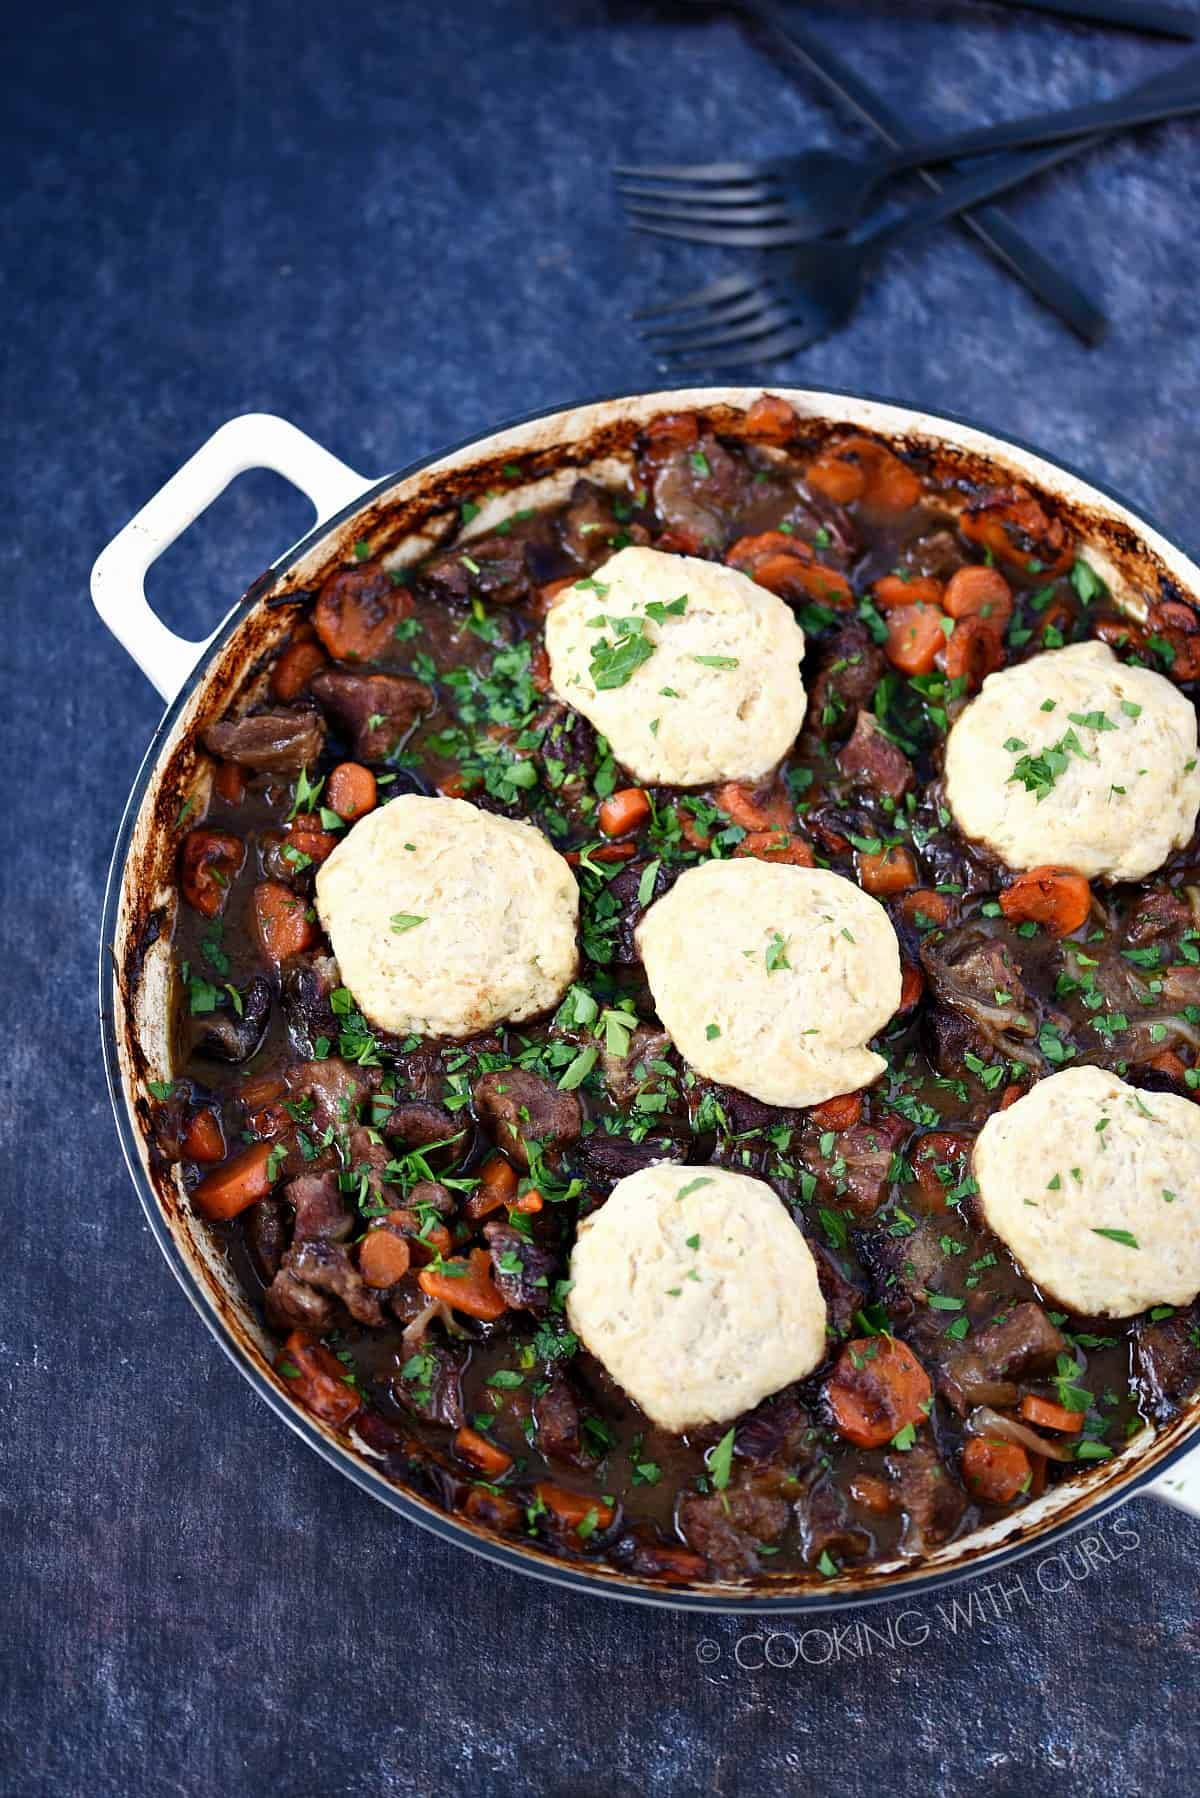 Looking down on a casserole pan filled with Guinness Beef, carrots and onions topped with Herb Dumplings.